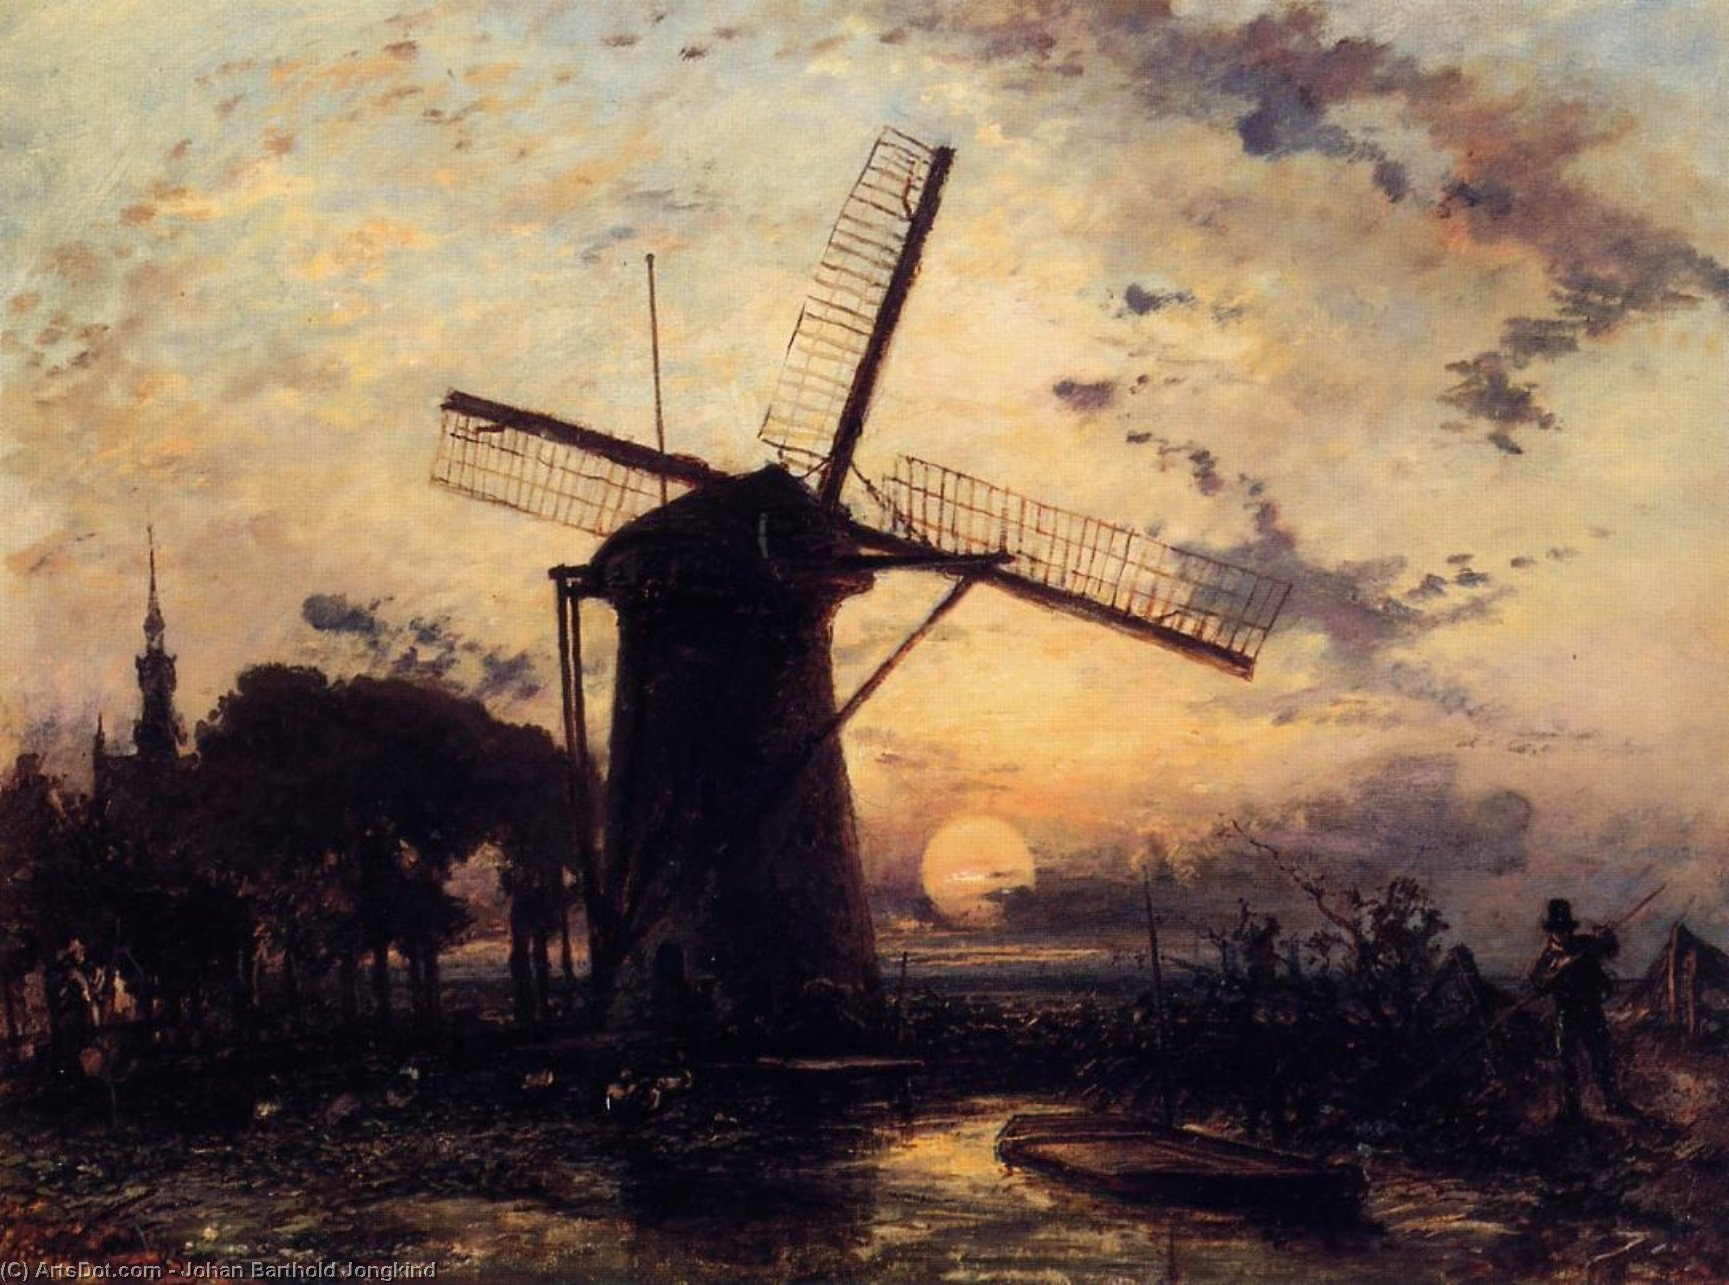 Boatman par un Windmill at Sundown de Johan Barthold Jongkind (1819-1891, Netherlands)